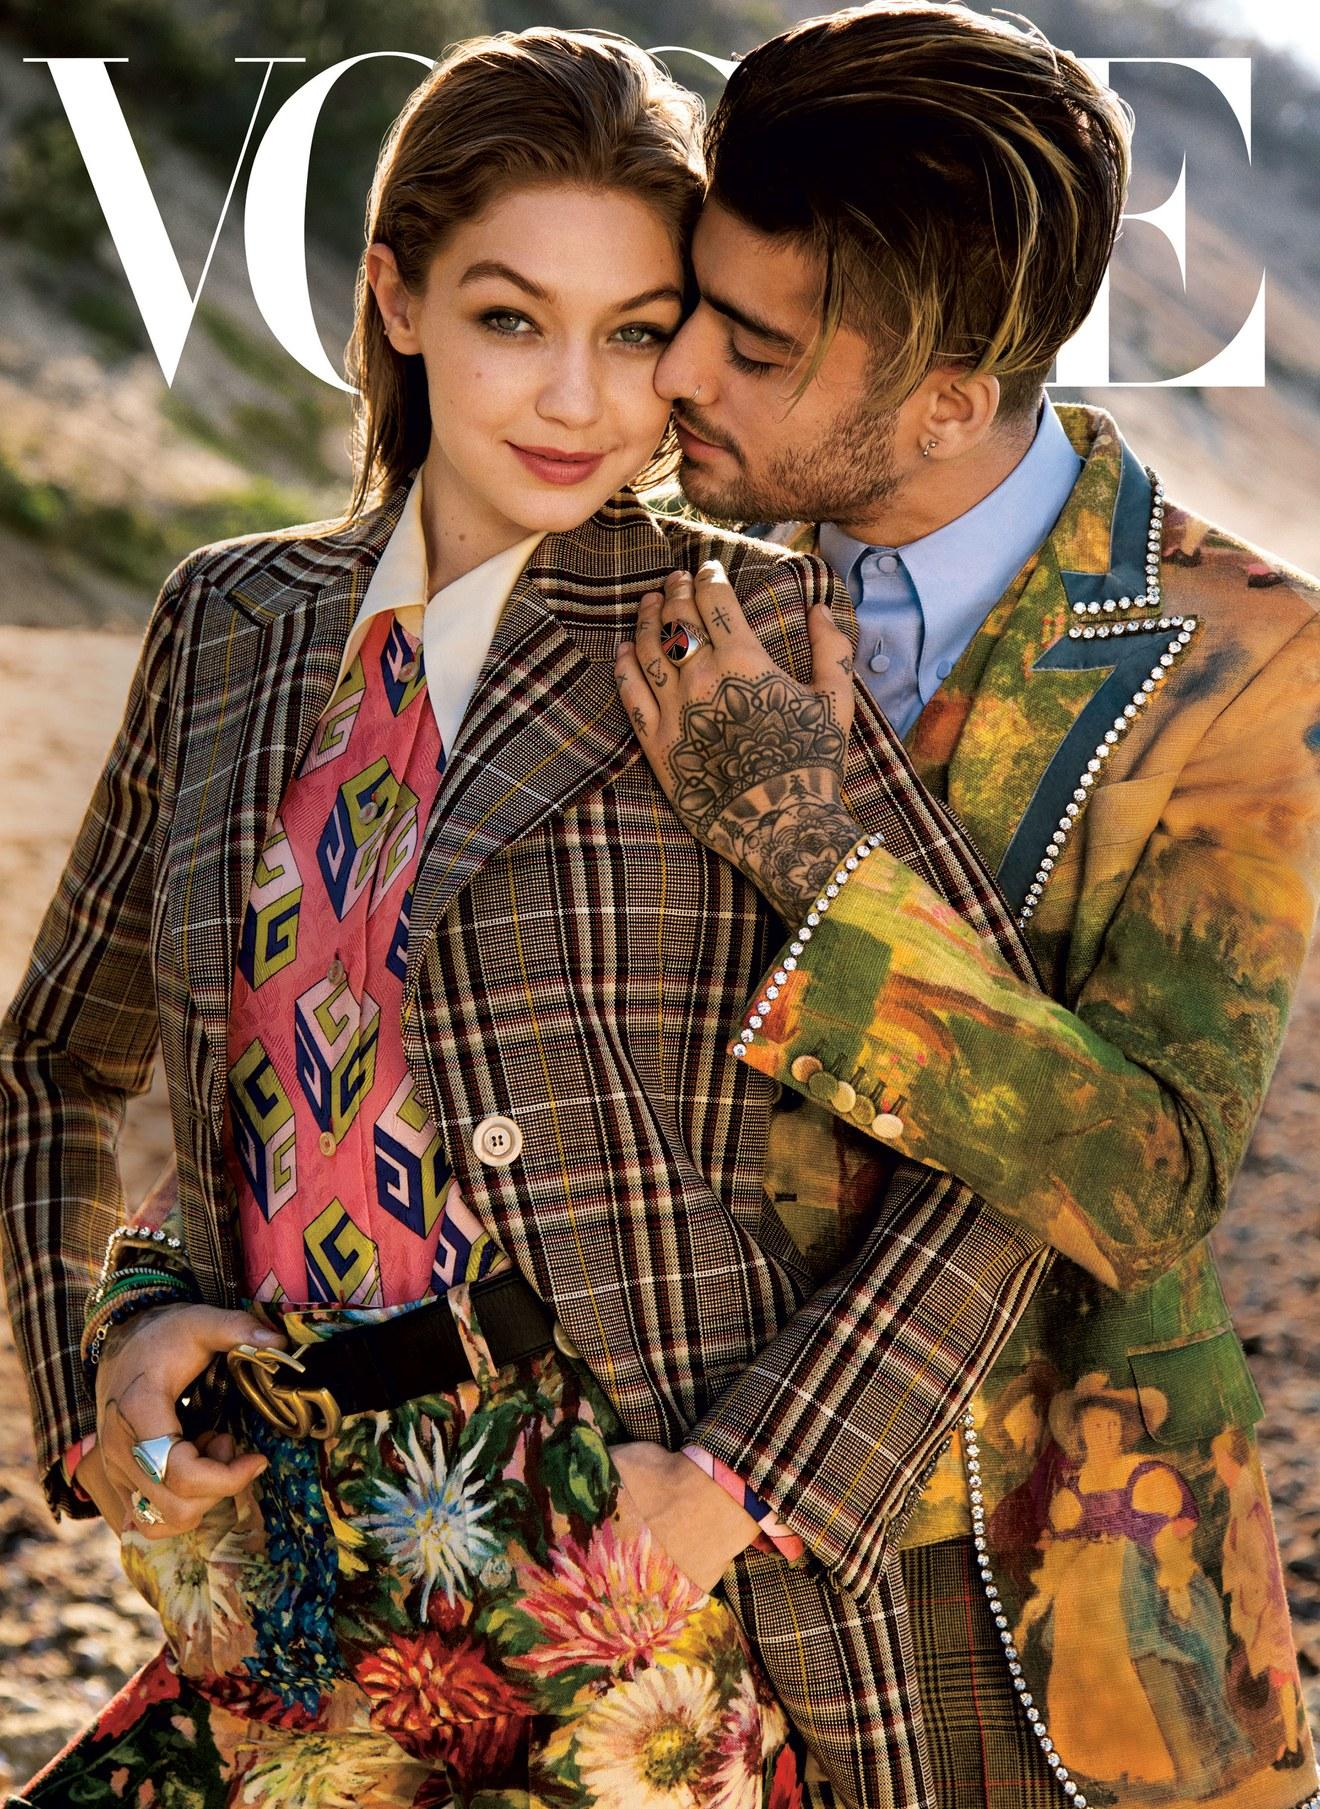 """""""Vogue"""" apologizes for """"gender fluidity"""" cover featuring Gigi Hadid and Zayn Malik - CBS News"""